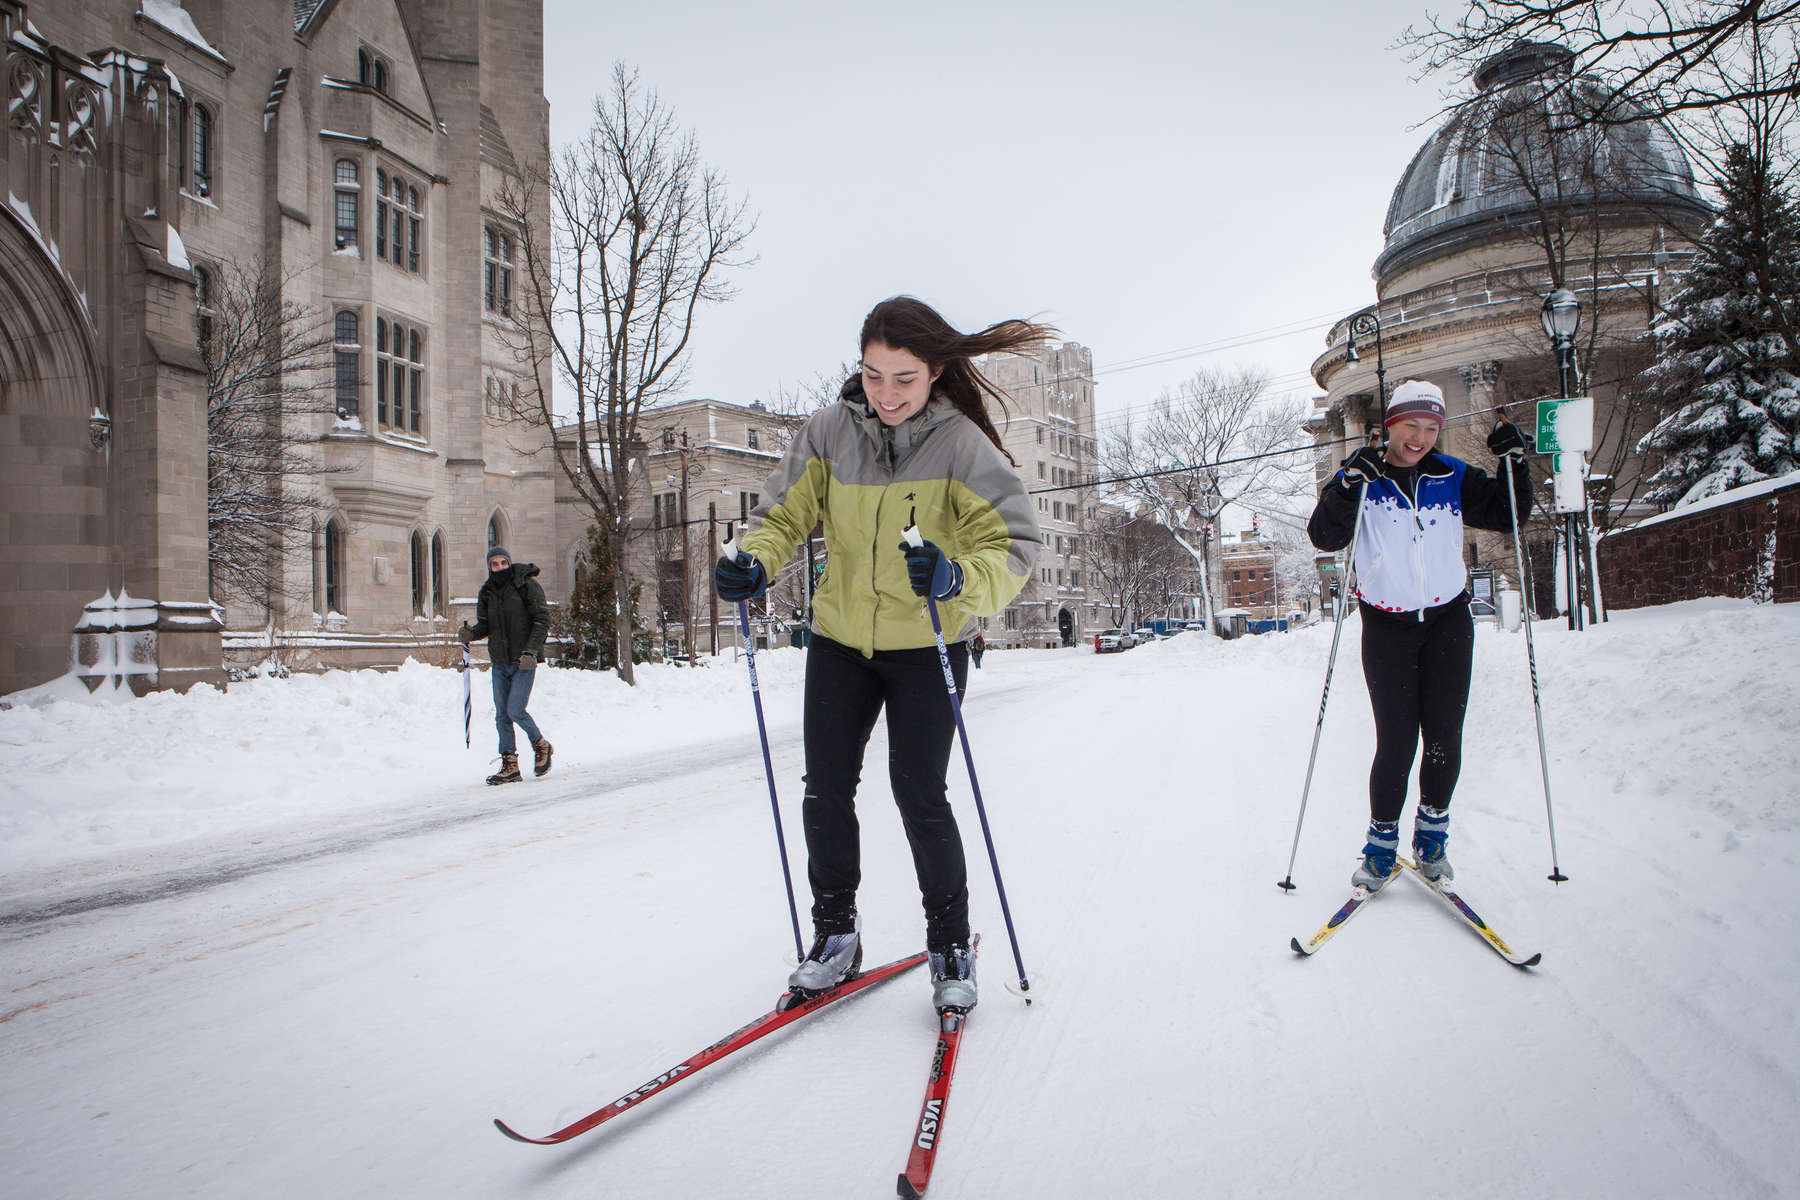 Two undergraduate students and members of the Yale University cross country ski team, take advantage of a snow day and ski on the quiet streets. Yale Alumni Magazine